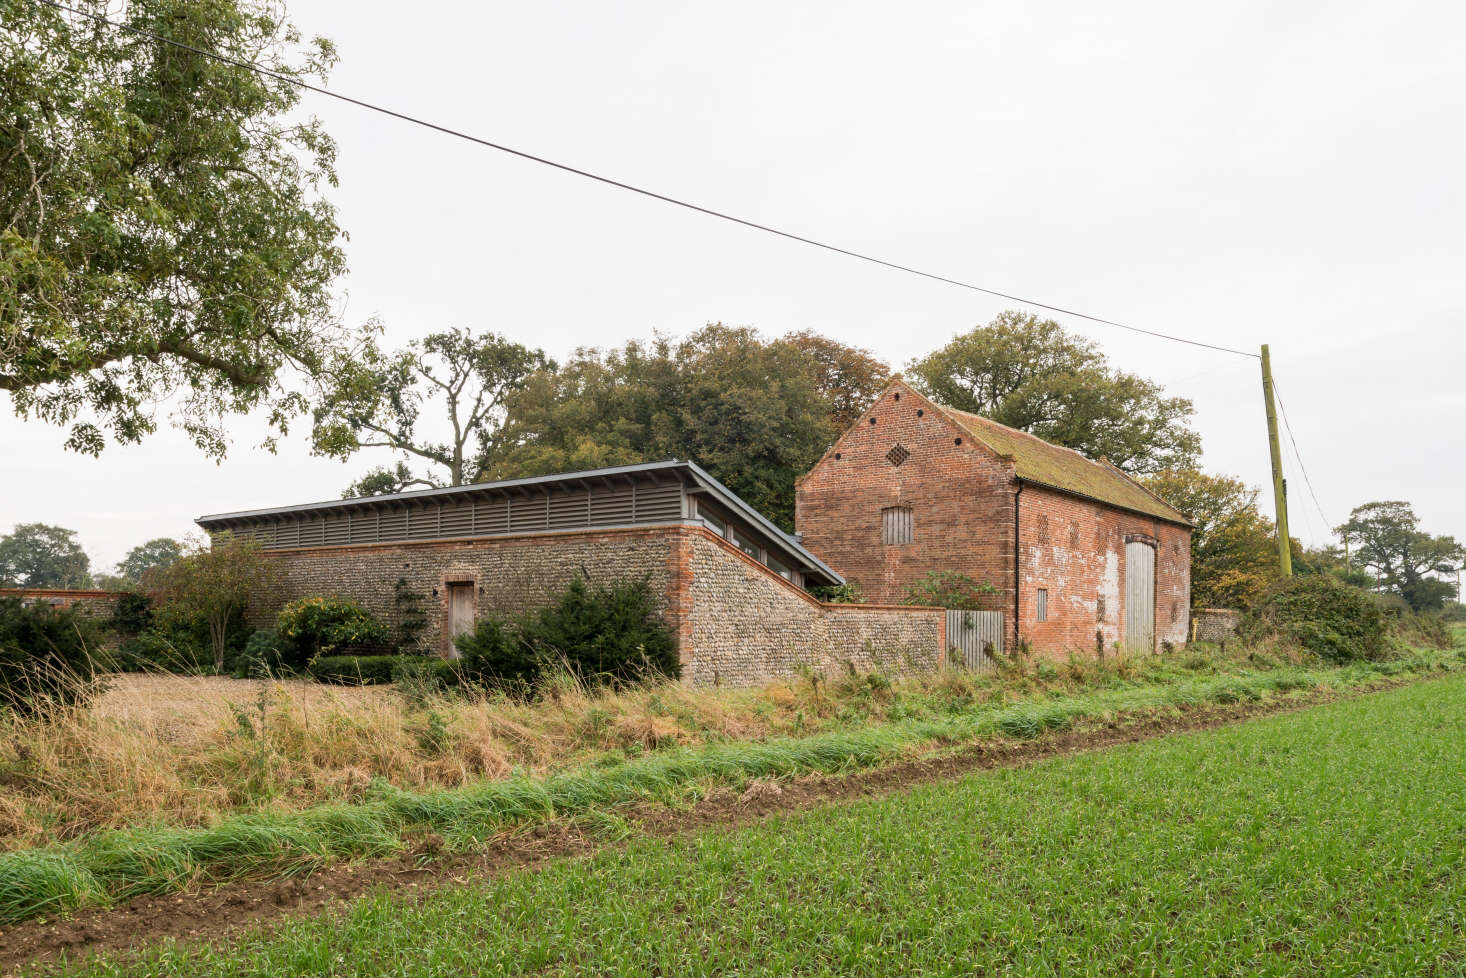 """""""At the moment we just use the barn for parties and entertaining—t's such a lovely luxury to have this beautiful Georgian barn at your disposal, although when we bought it it was being used as farm storage, and was filled with old tractors and hay,"""" said Erlam."""